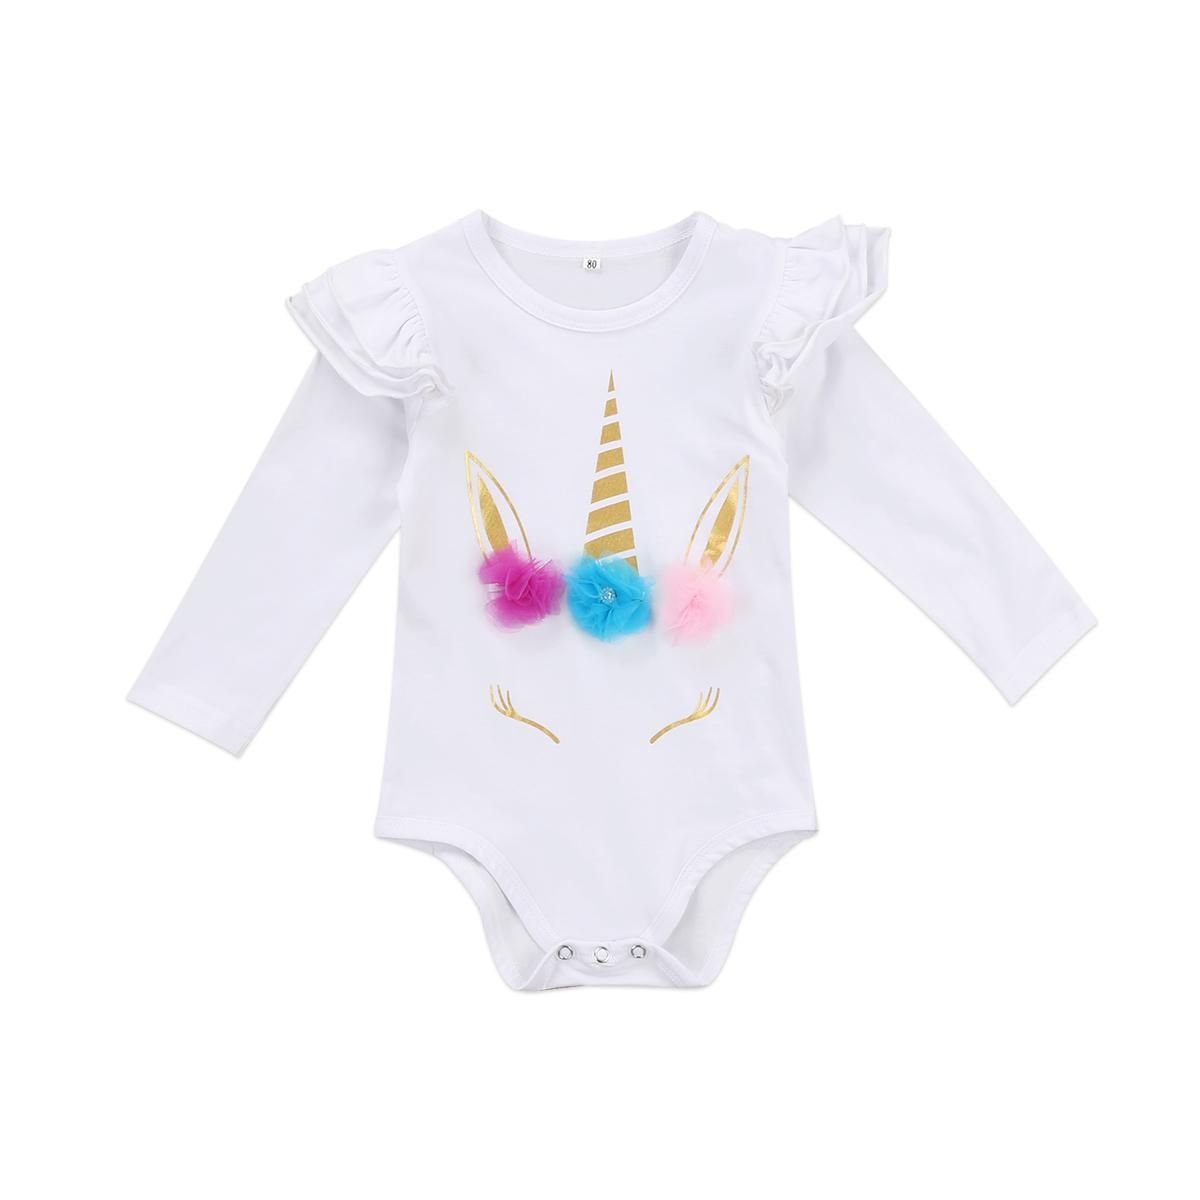 Newborn Baby Romper Suit Toddler Overall Girls Leotards Kids Boutique Clothing Infant Jumpsuit Kid Bodysuit